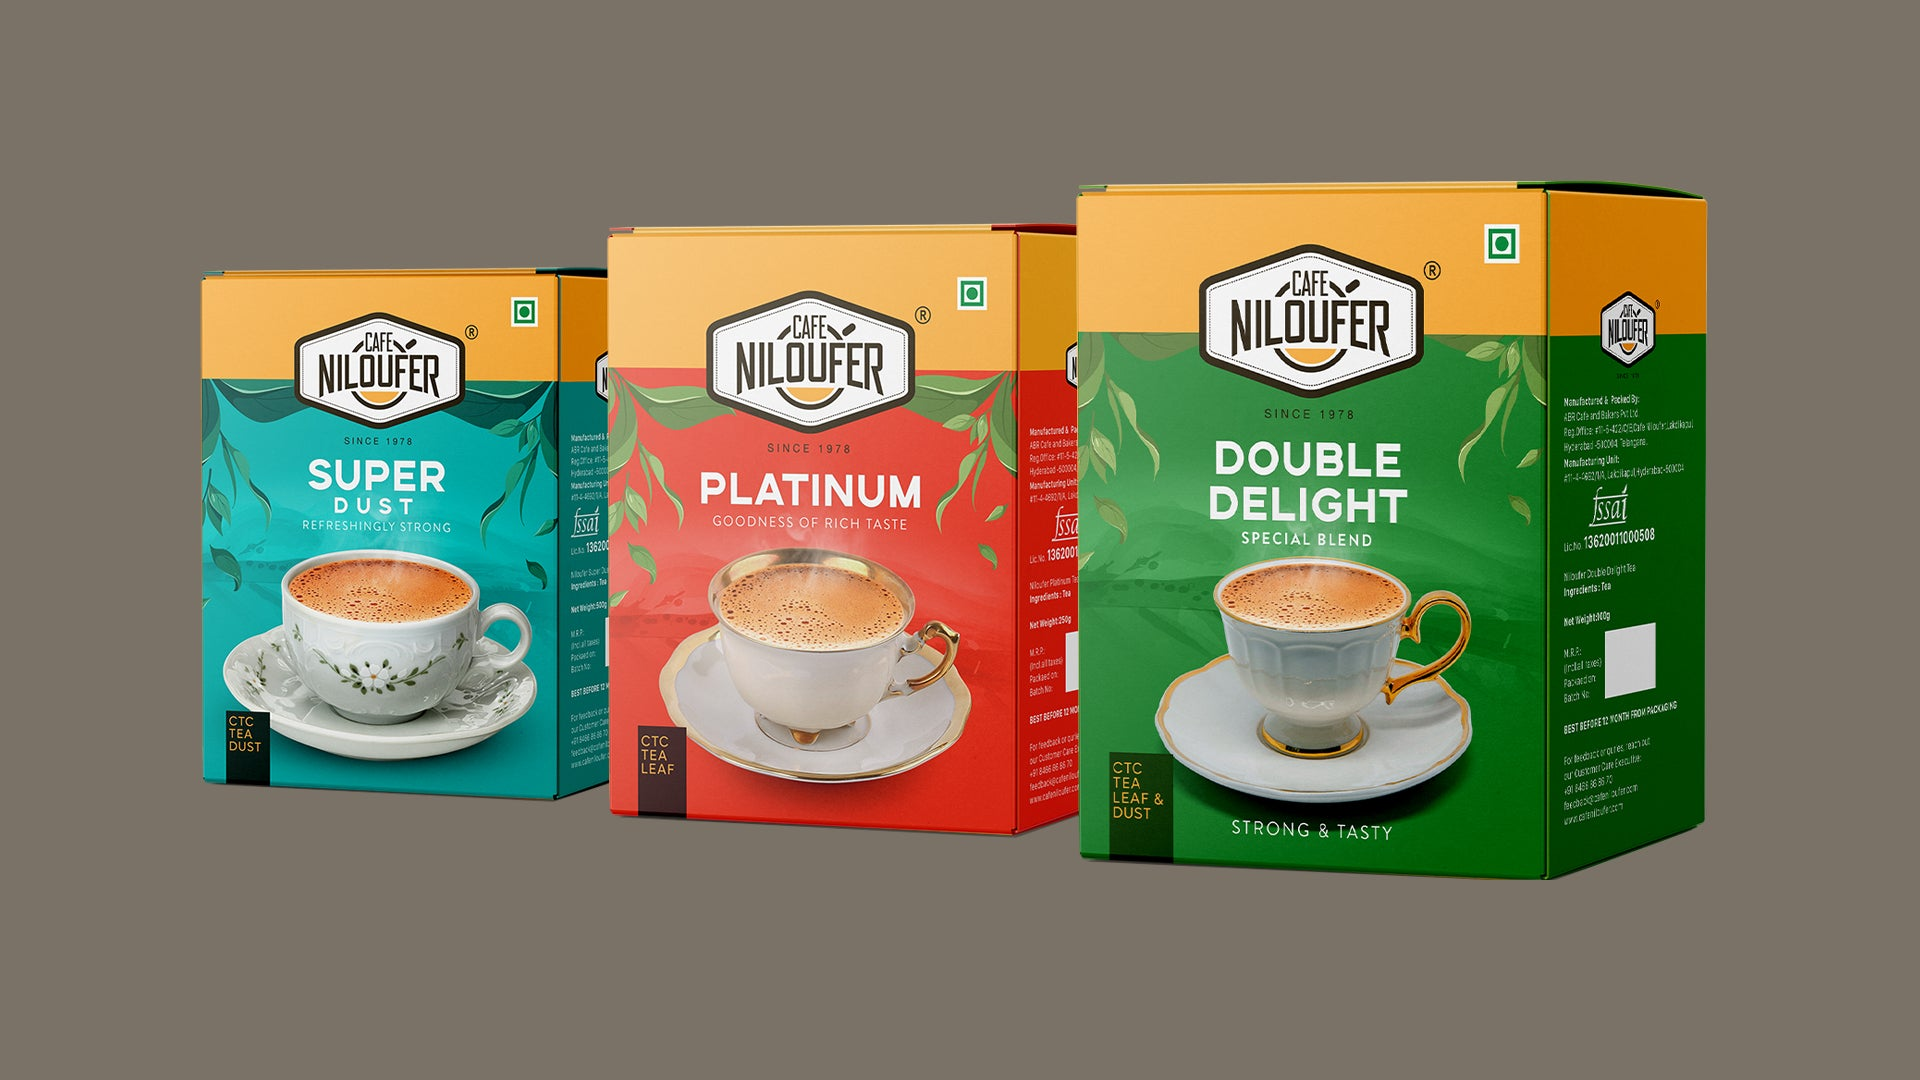 Cafe Niloufer Tea Products